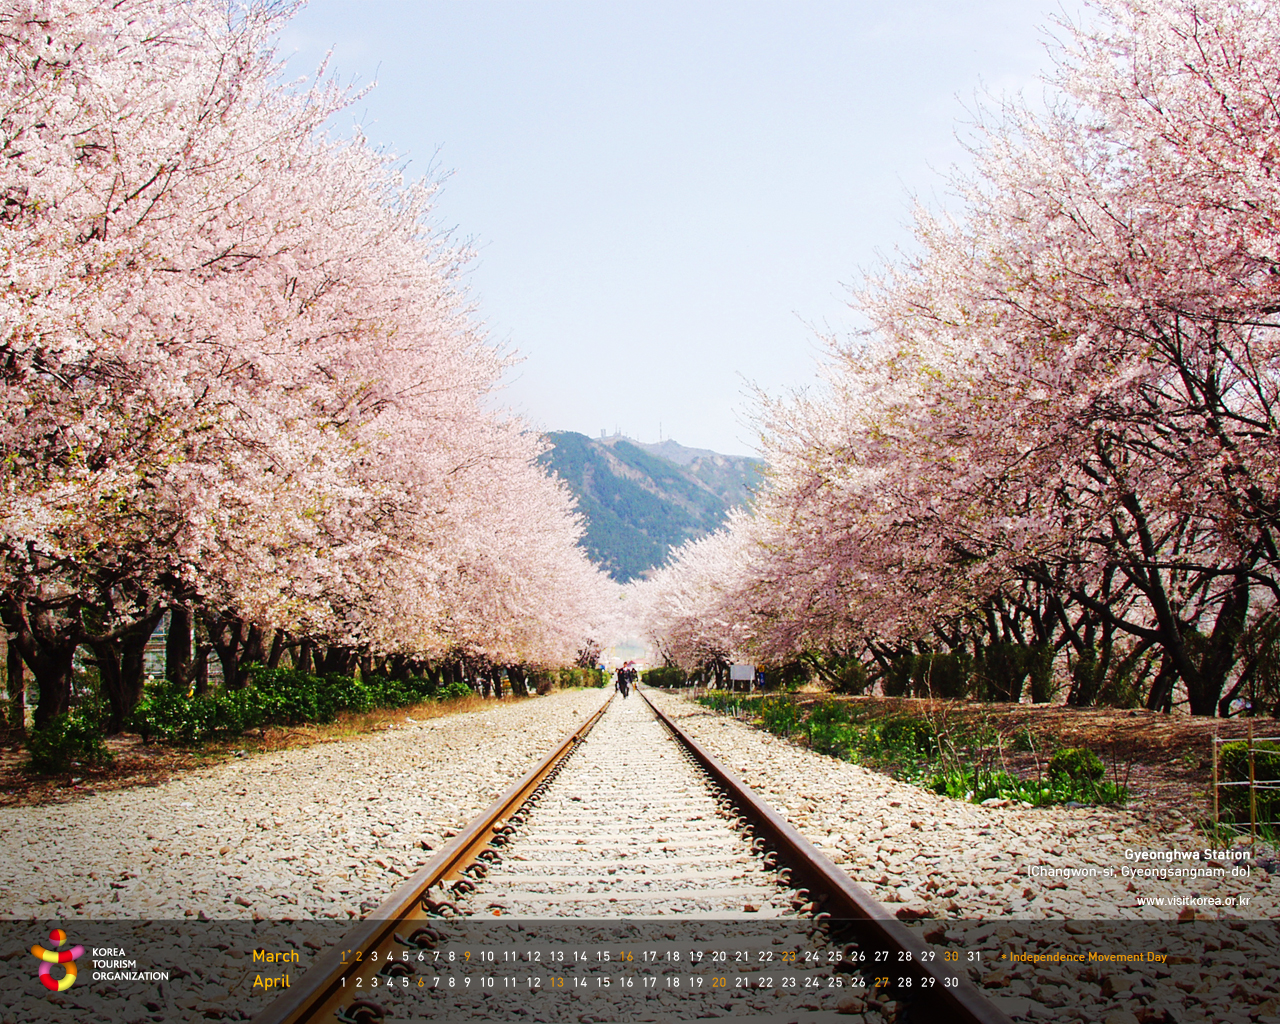 official site of korea tourism org wallpaper 2014